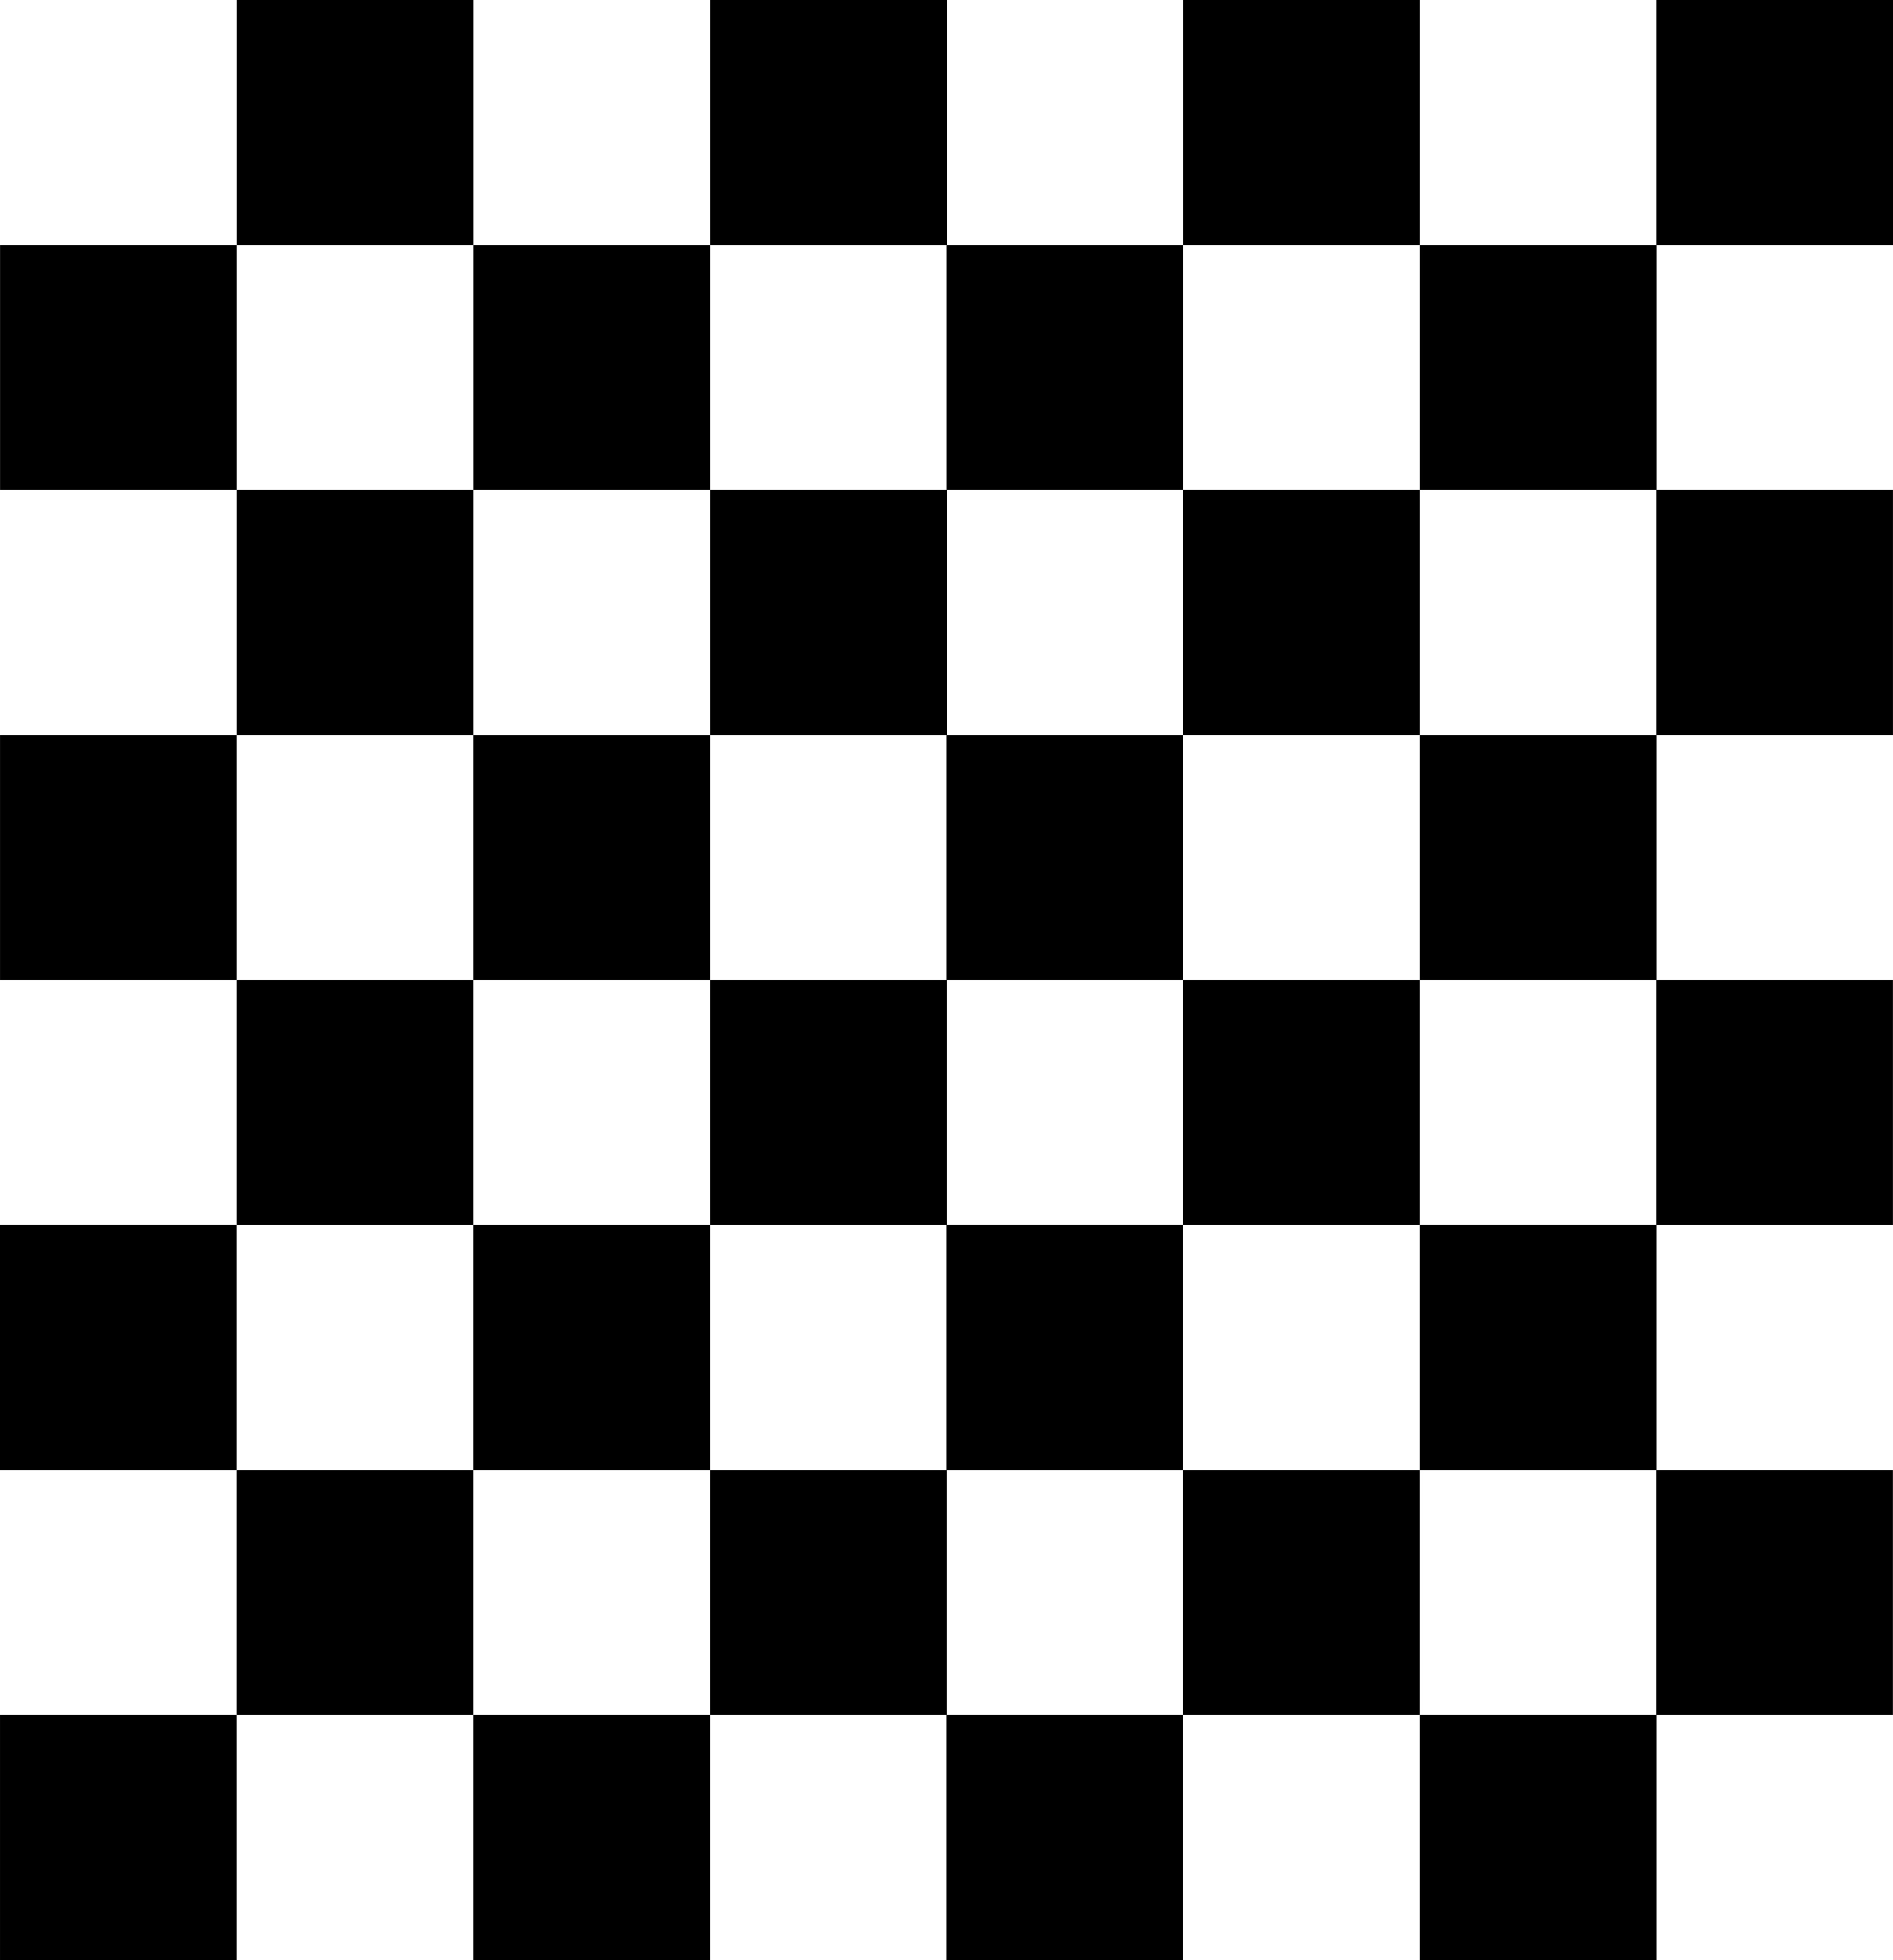 Chessboard Recreation Games Chess Chessboard Png Html